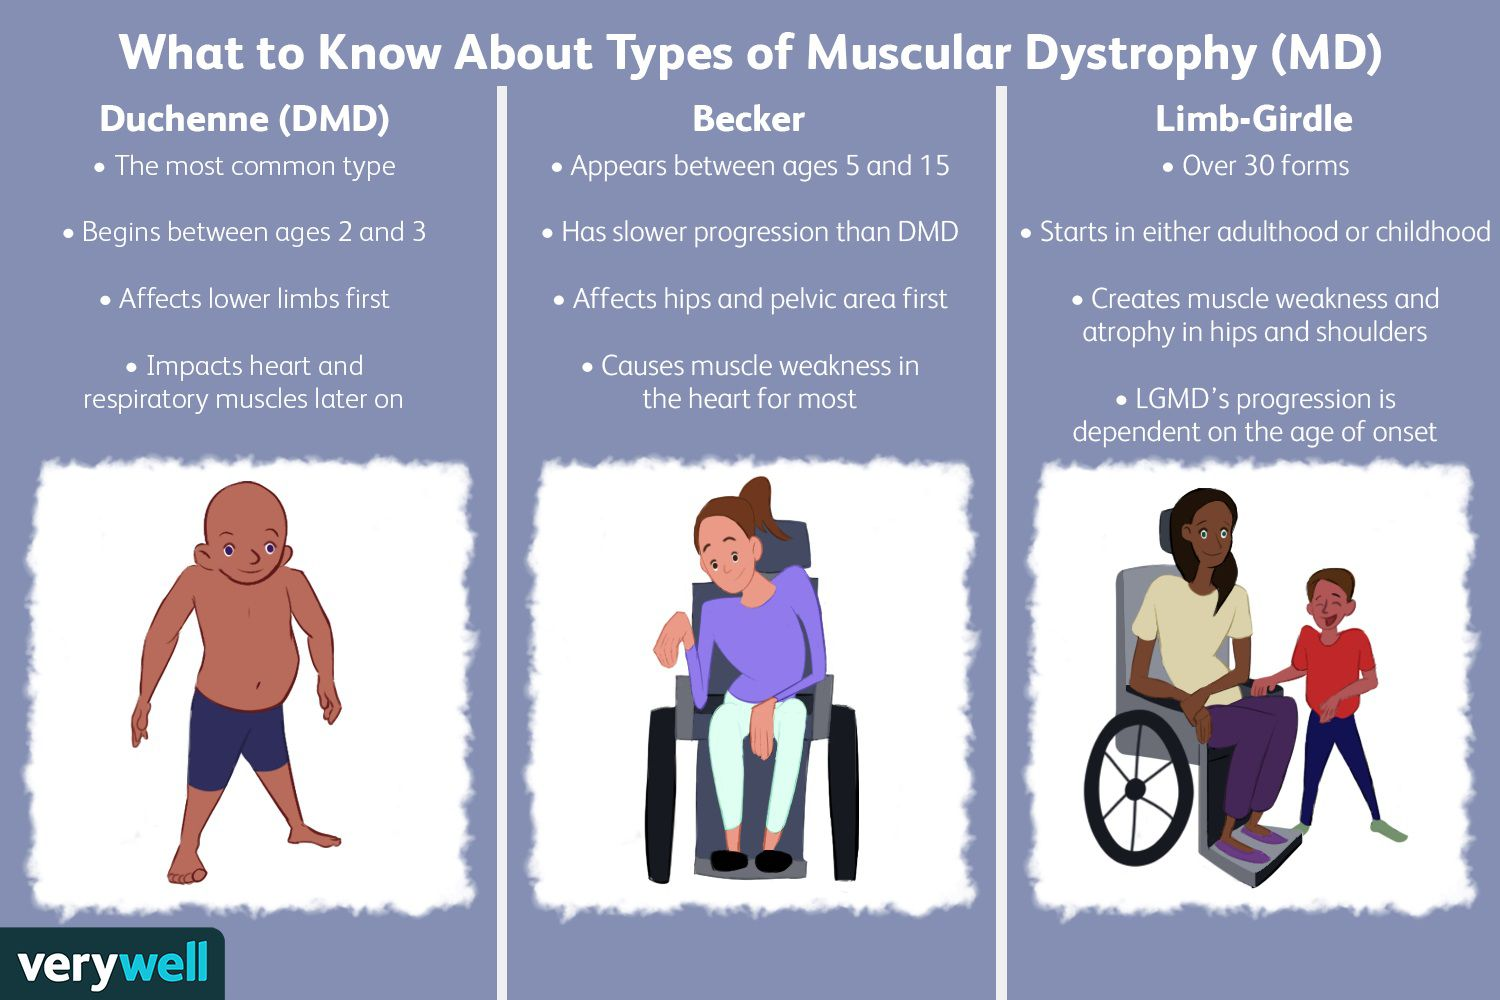 What to Know About Types of Muscular Dystrophy (MD)